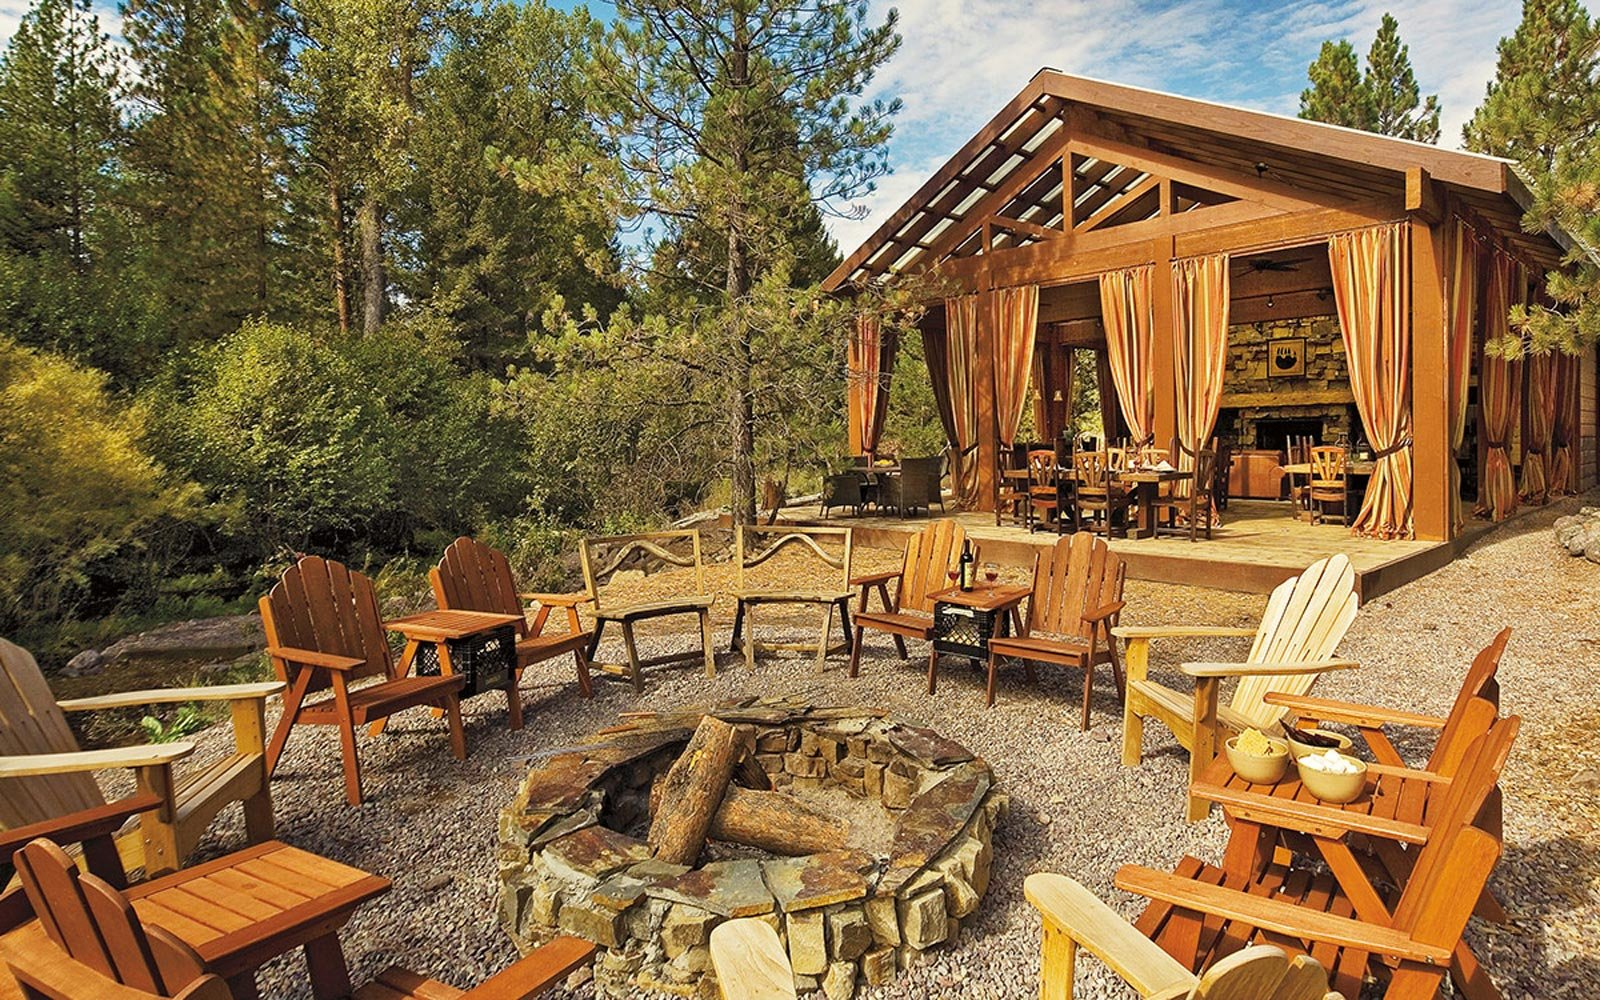 Fire pit at Paws Up Resort